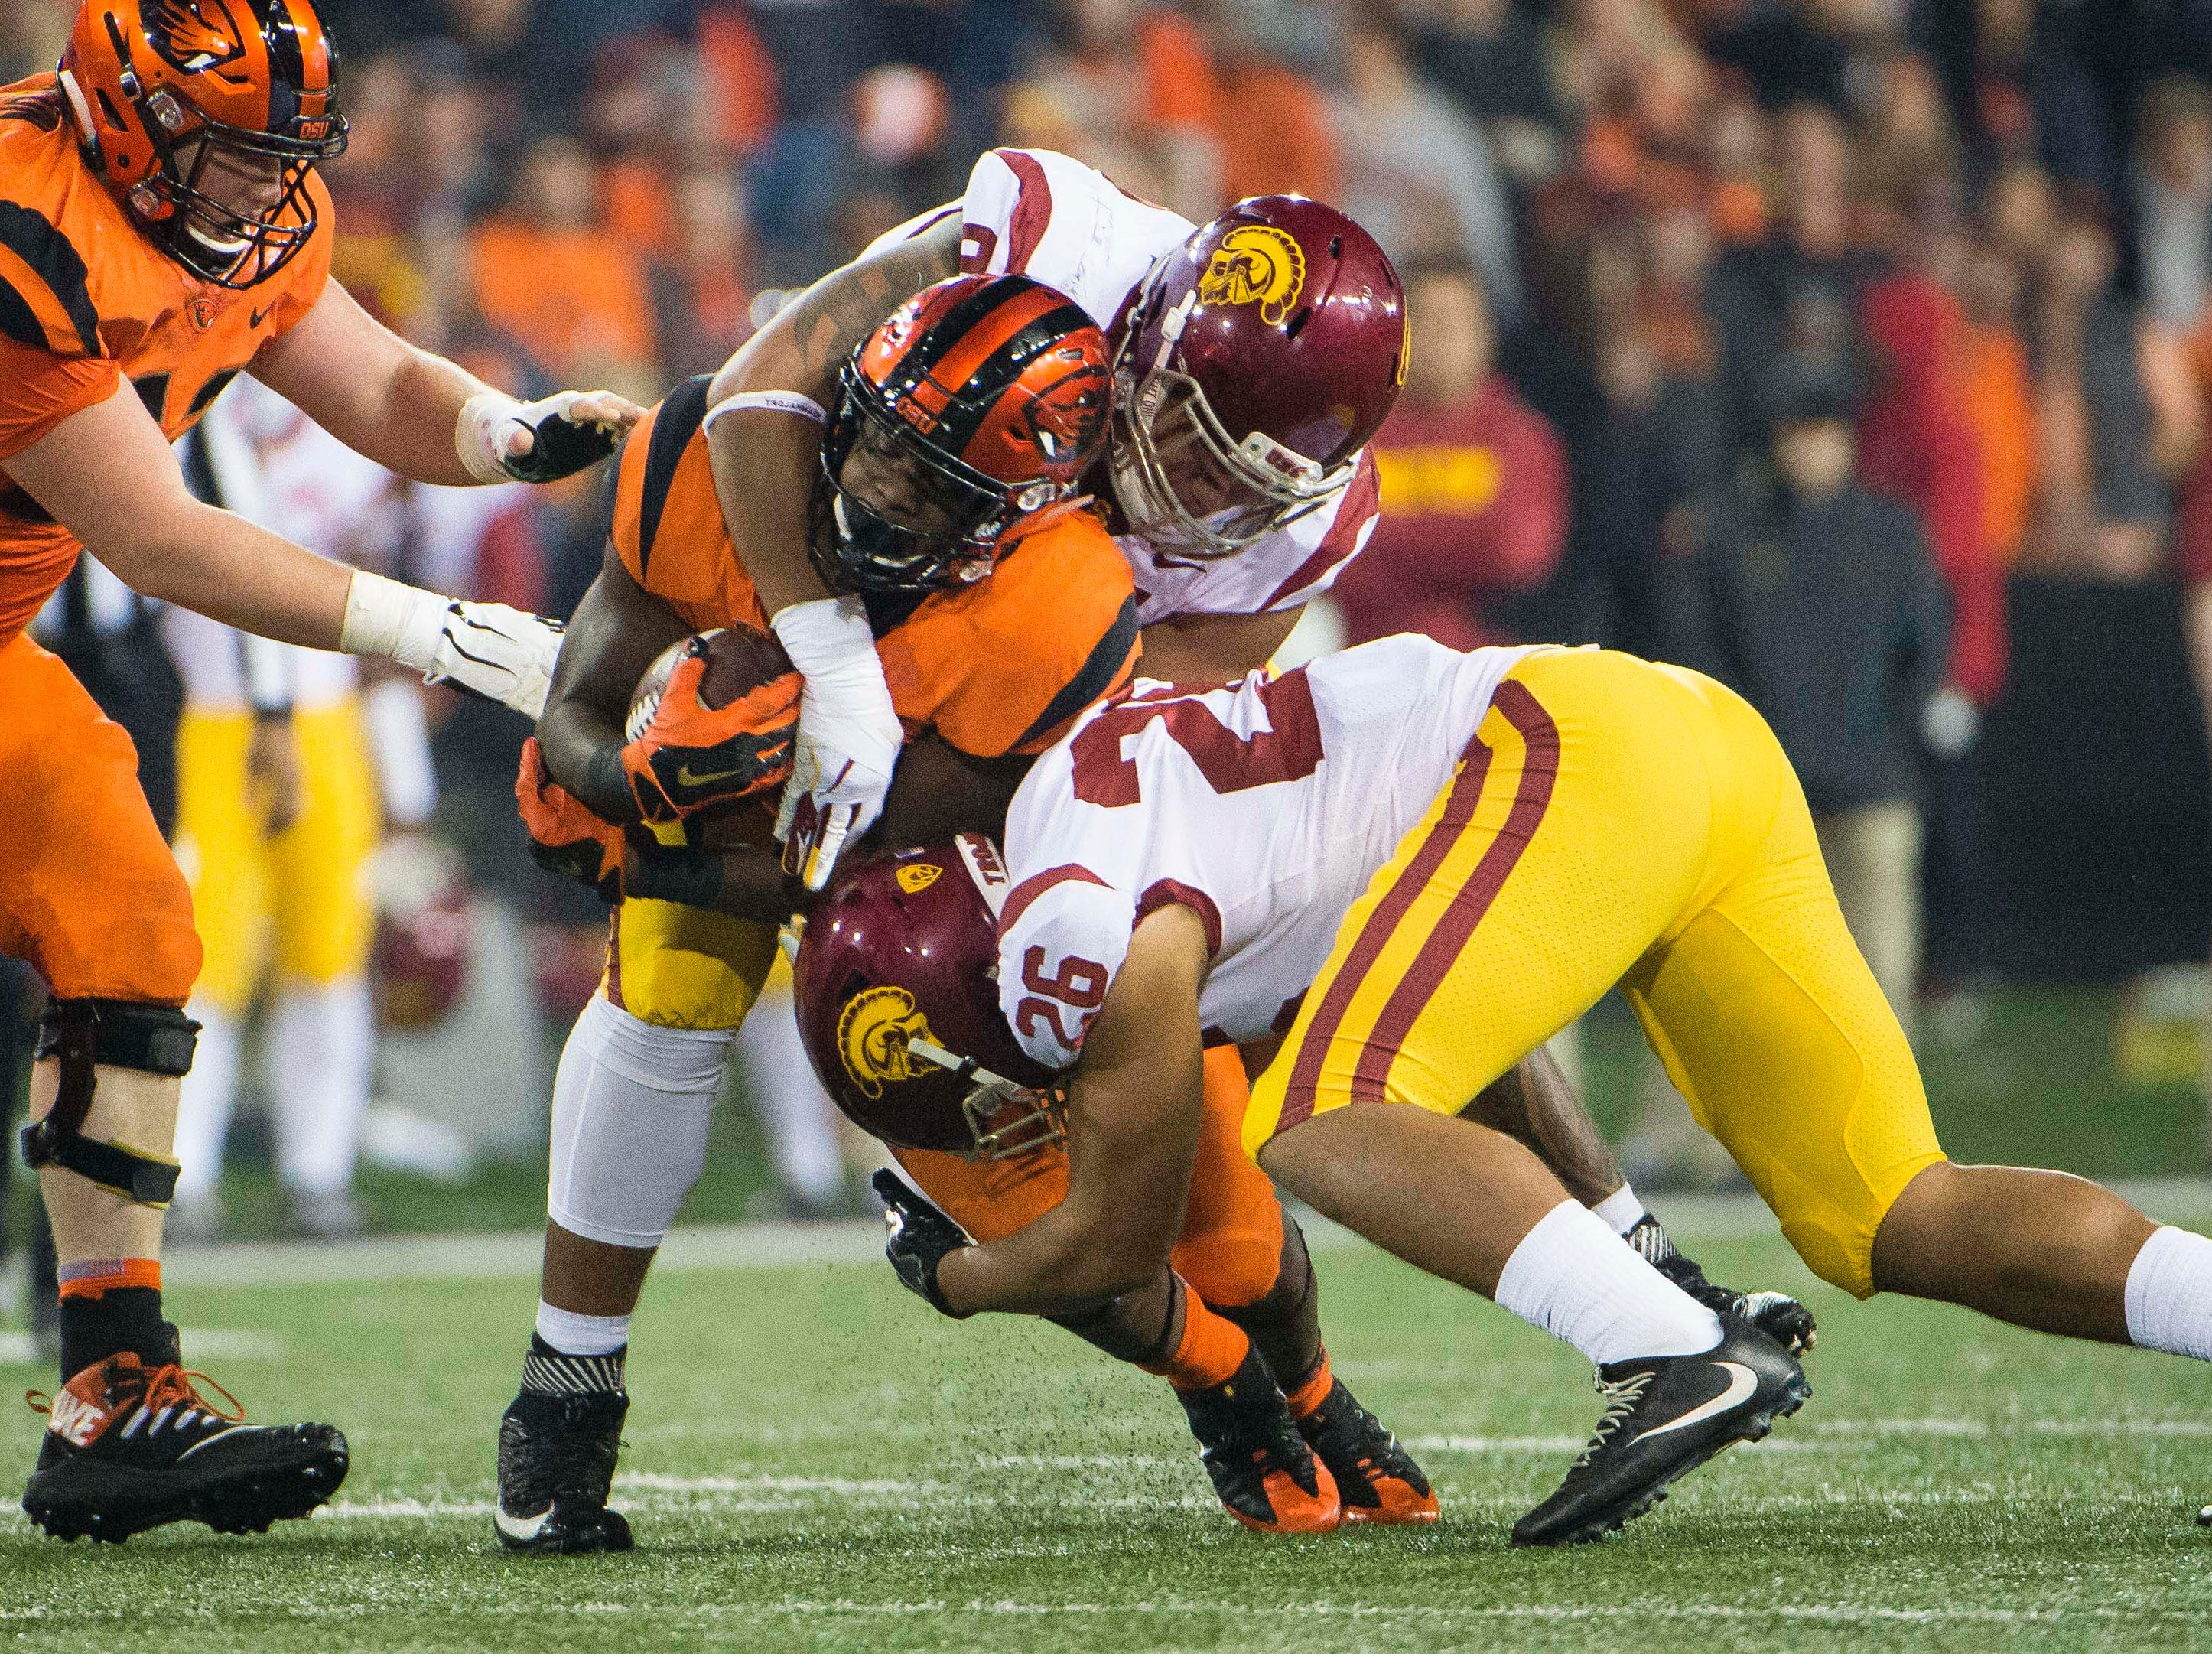 Oregon State Beavers running back Jermar Jefferson (22) is tackled by USC Trojans defensive lineman Brandon Pili (91) and linebacker Kana'i Mauga (26) during the second half at Reser Stadium.